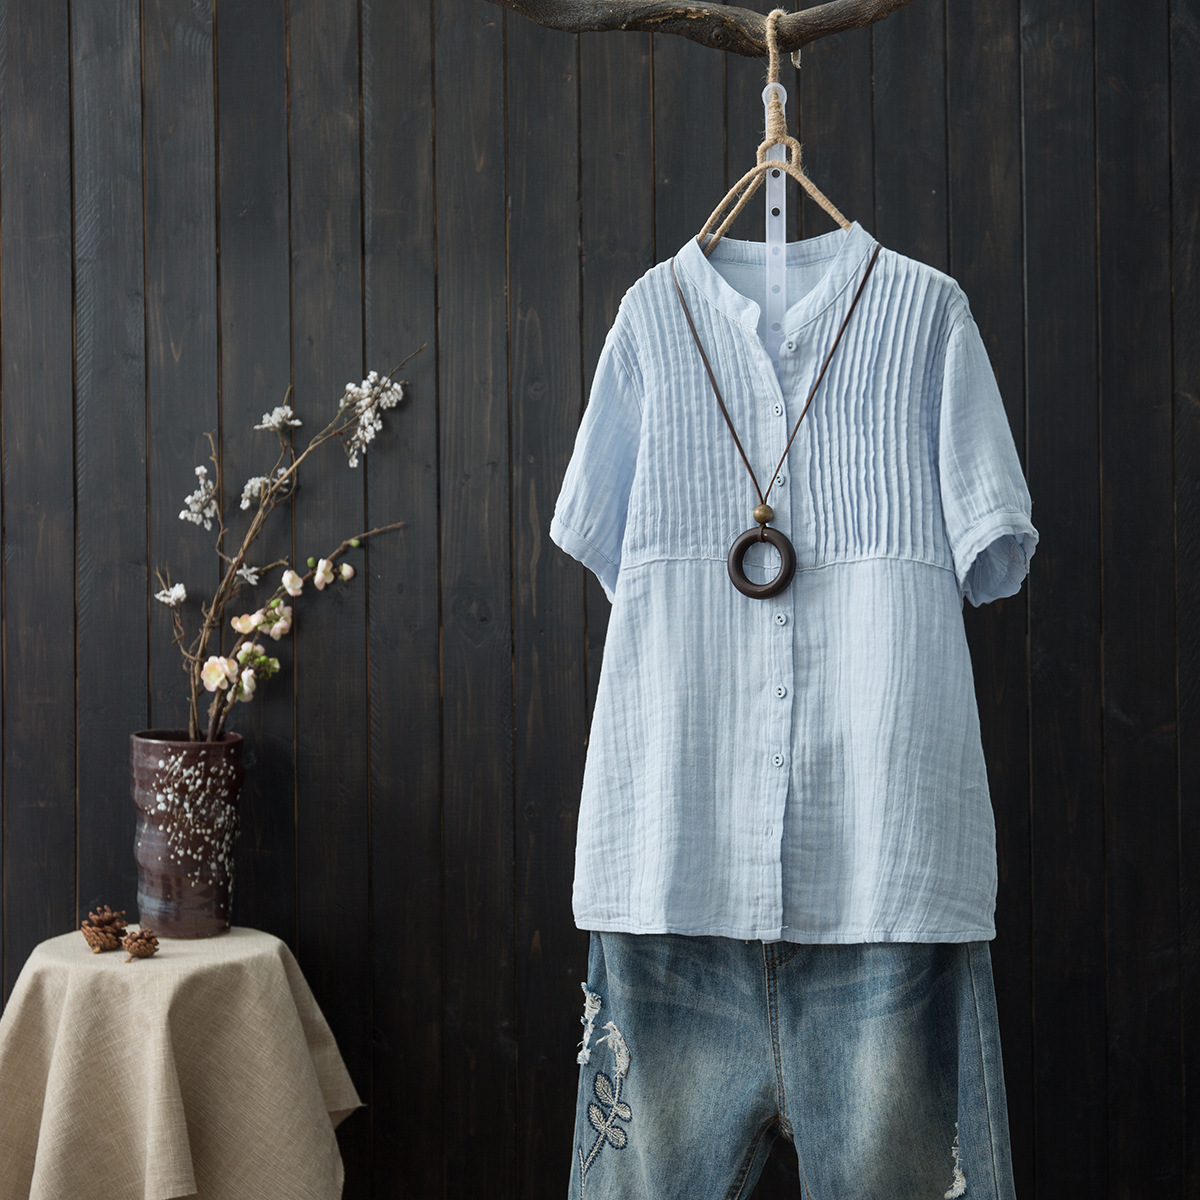 Vinage Female Summer Simple Literary Pleated Loose Short-sleeved shirt O-neck Tunic Top shirt Cotton Linen Shirt